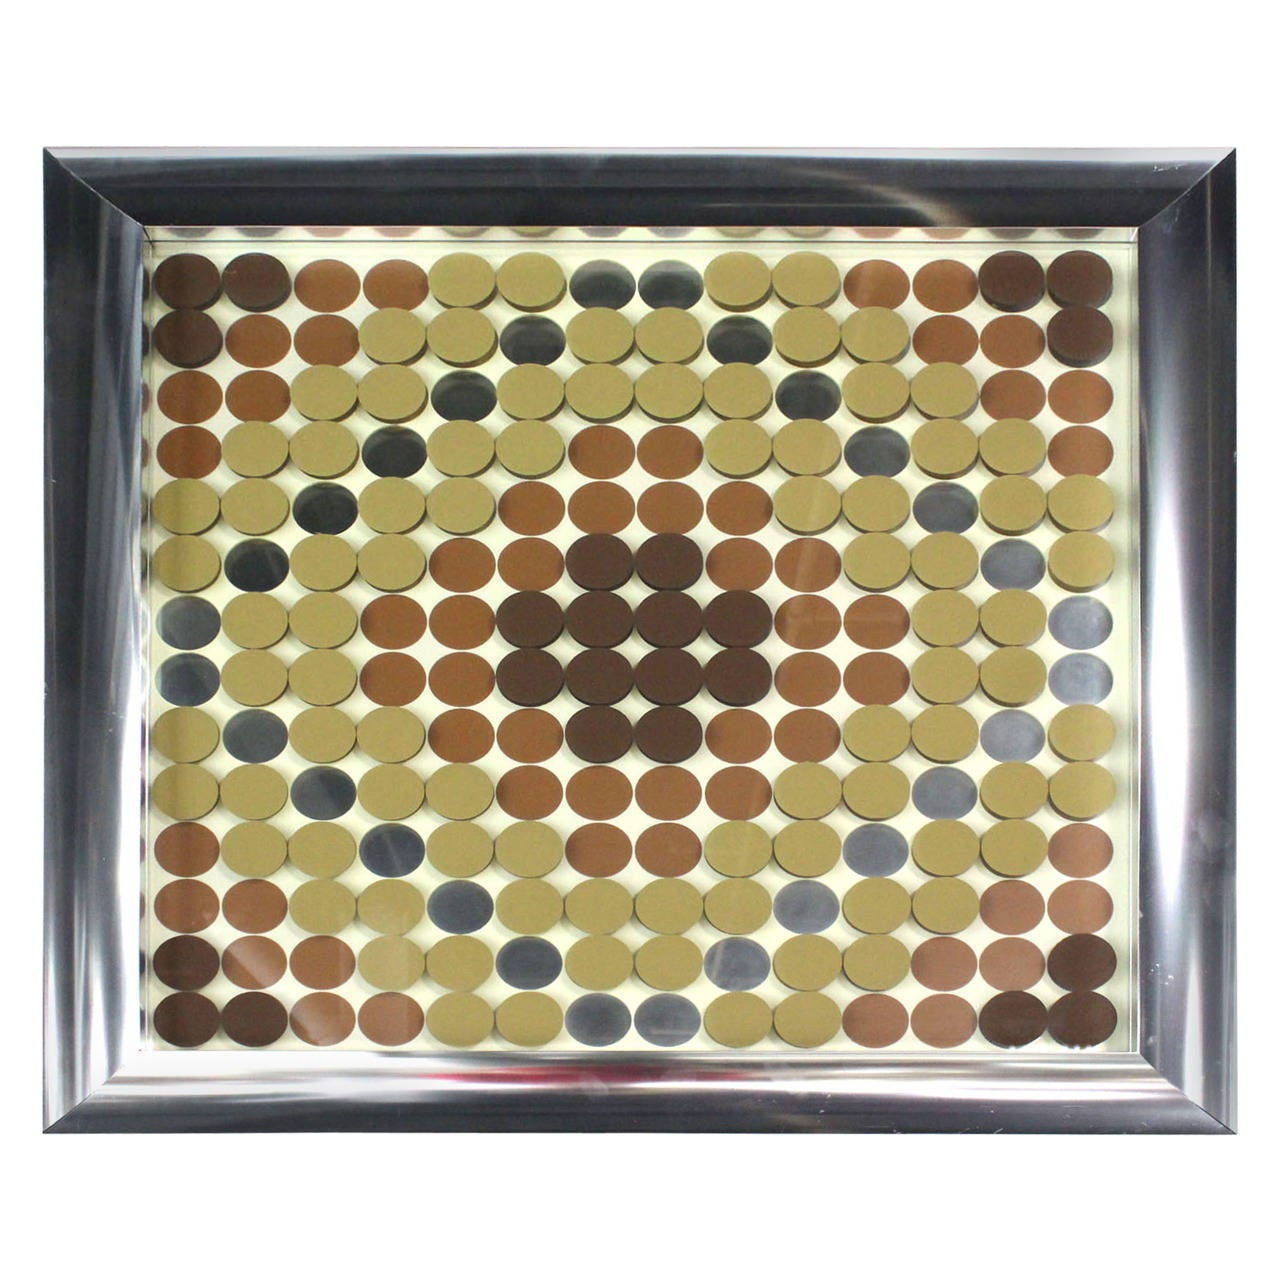 Three dimensional 3d wall hanging plaque art for sale